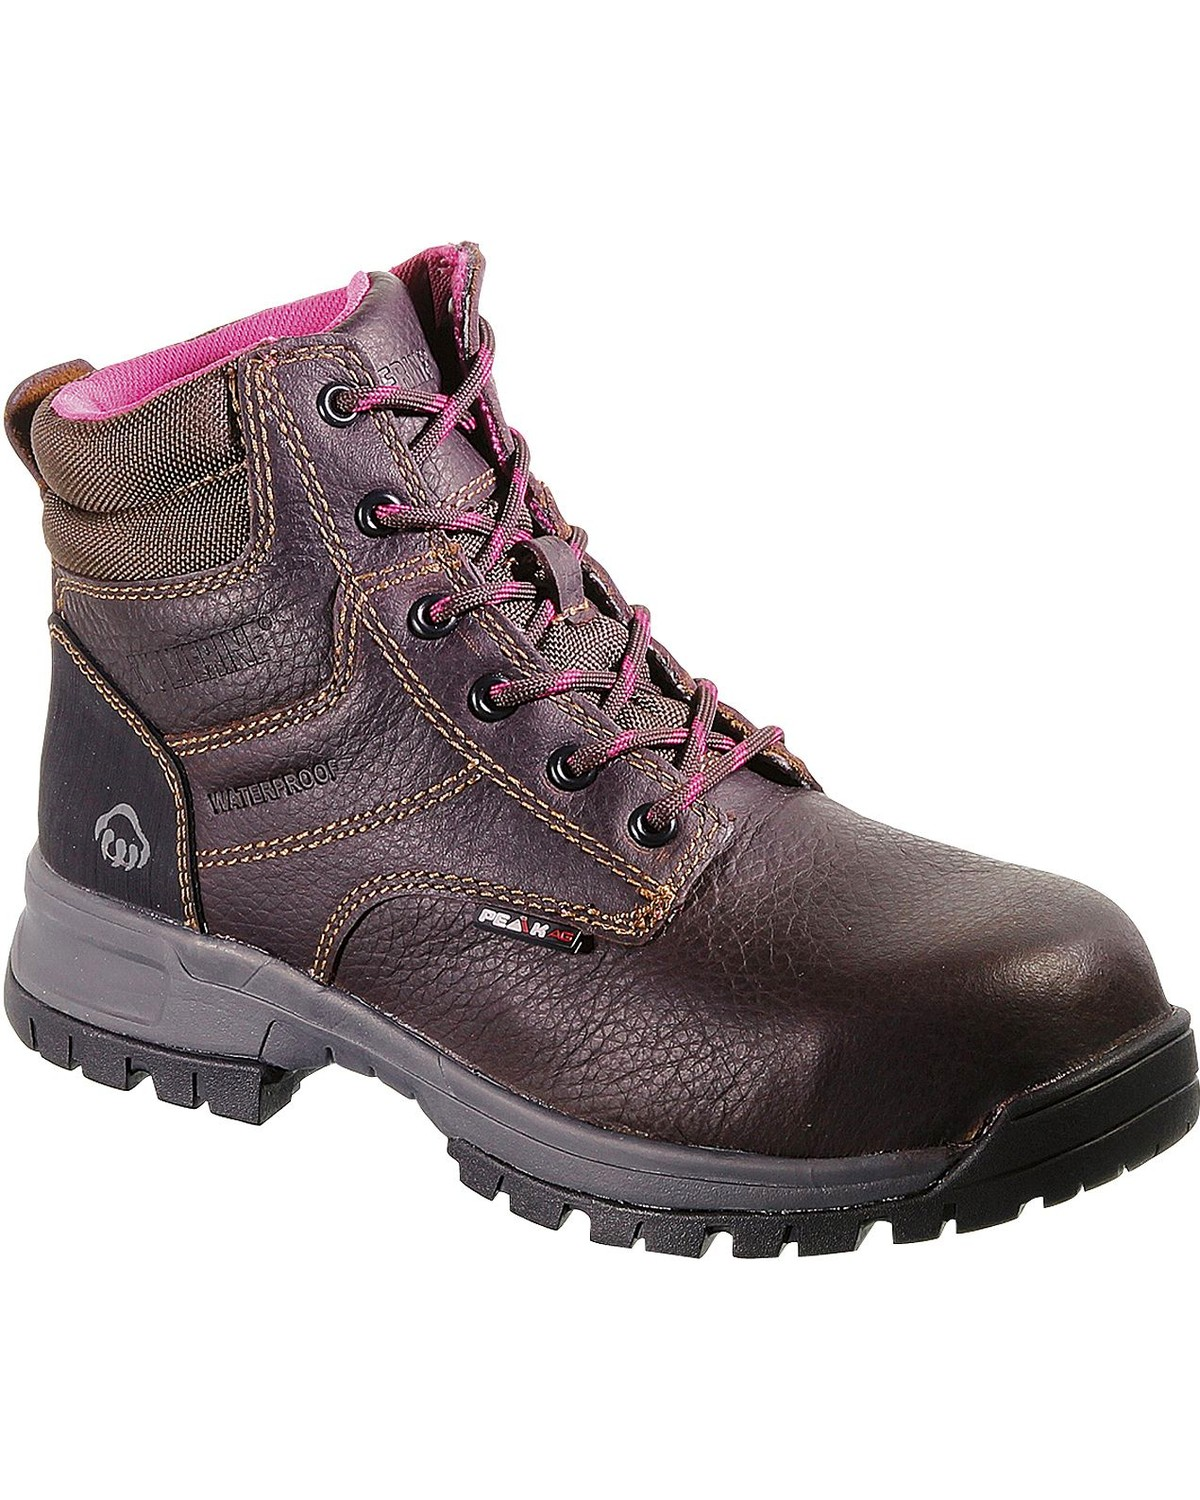 5df24fb4a48 Wolverine Women's Piper Waterproof Composite Toe Work Boots